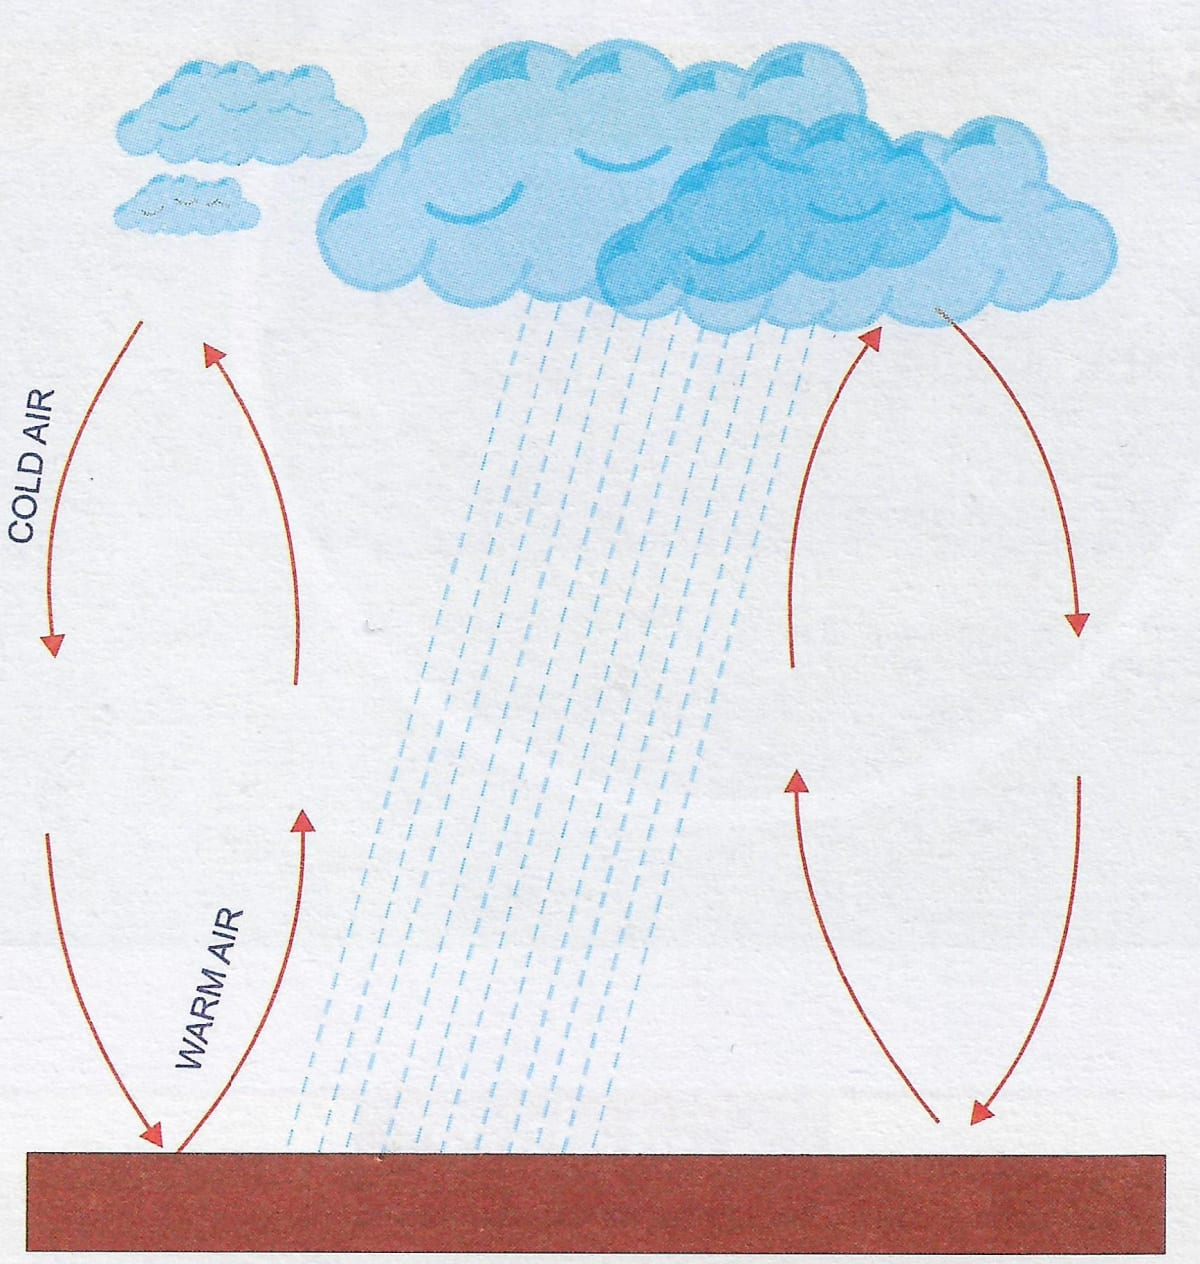 Draw a well labelled diagram showing convectional rainfall. Humidity, Total Geography Solutions ICSE Class 9.